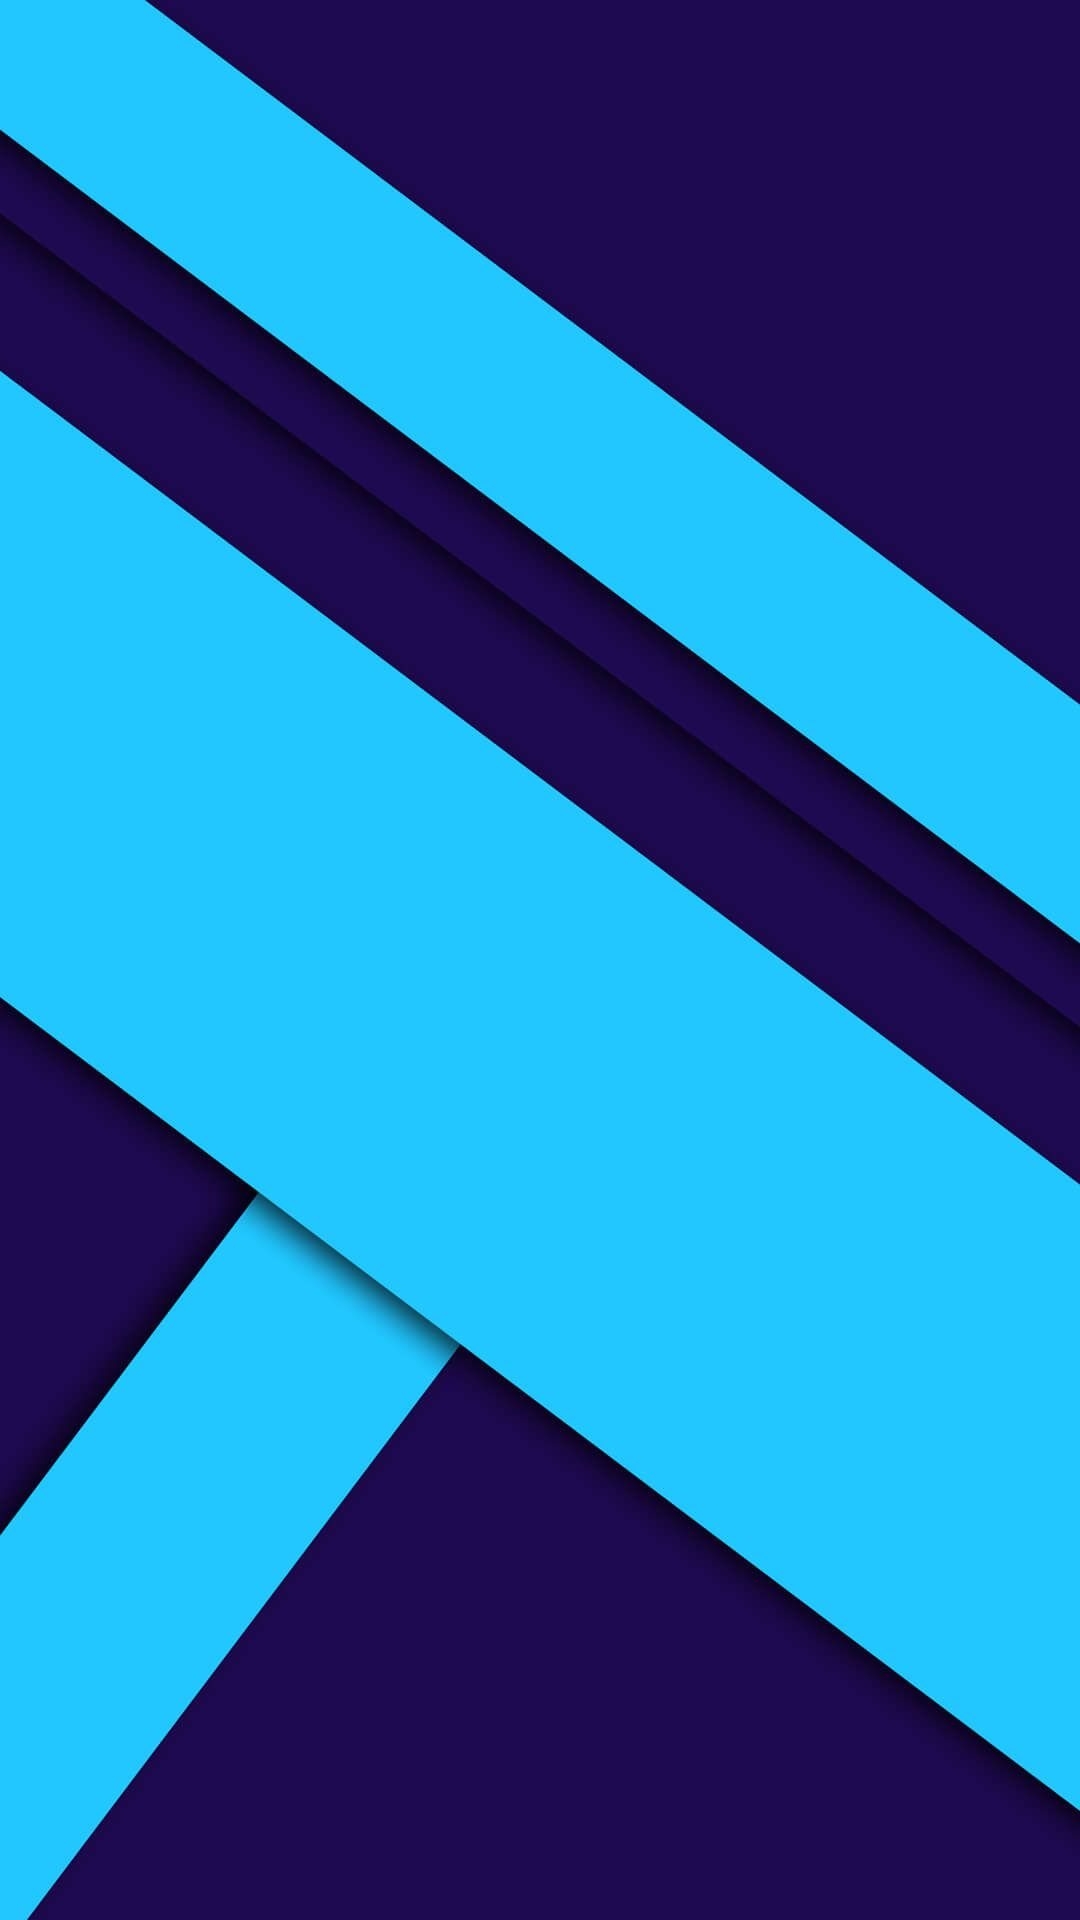 Pin by christina on material design material design - Material design mobile wallpaper ...